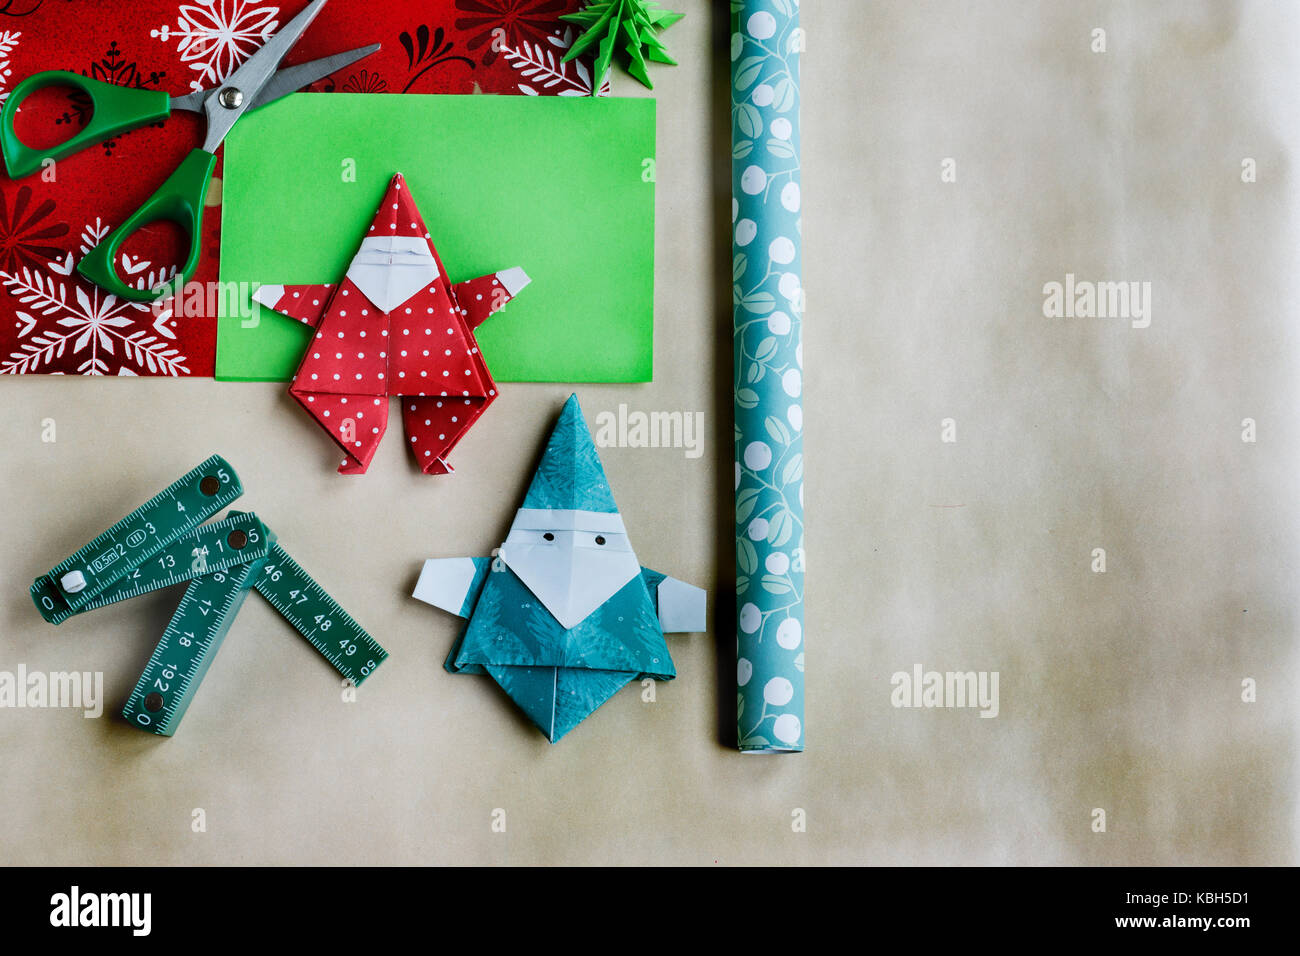 Overhead Of Handmade Origami Christmas Ornaments And Ribbon